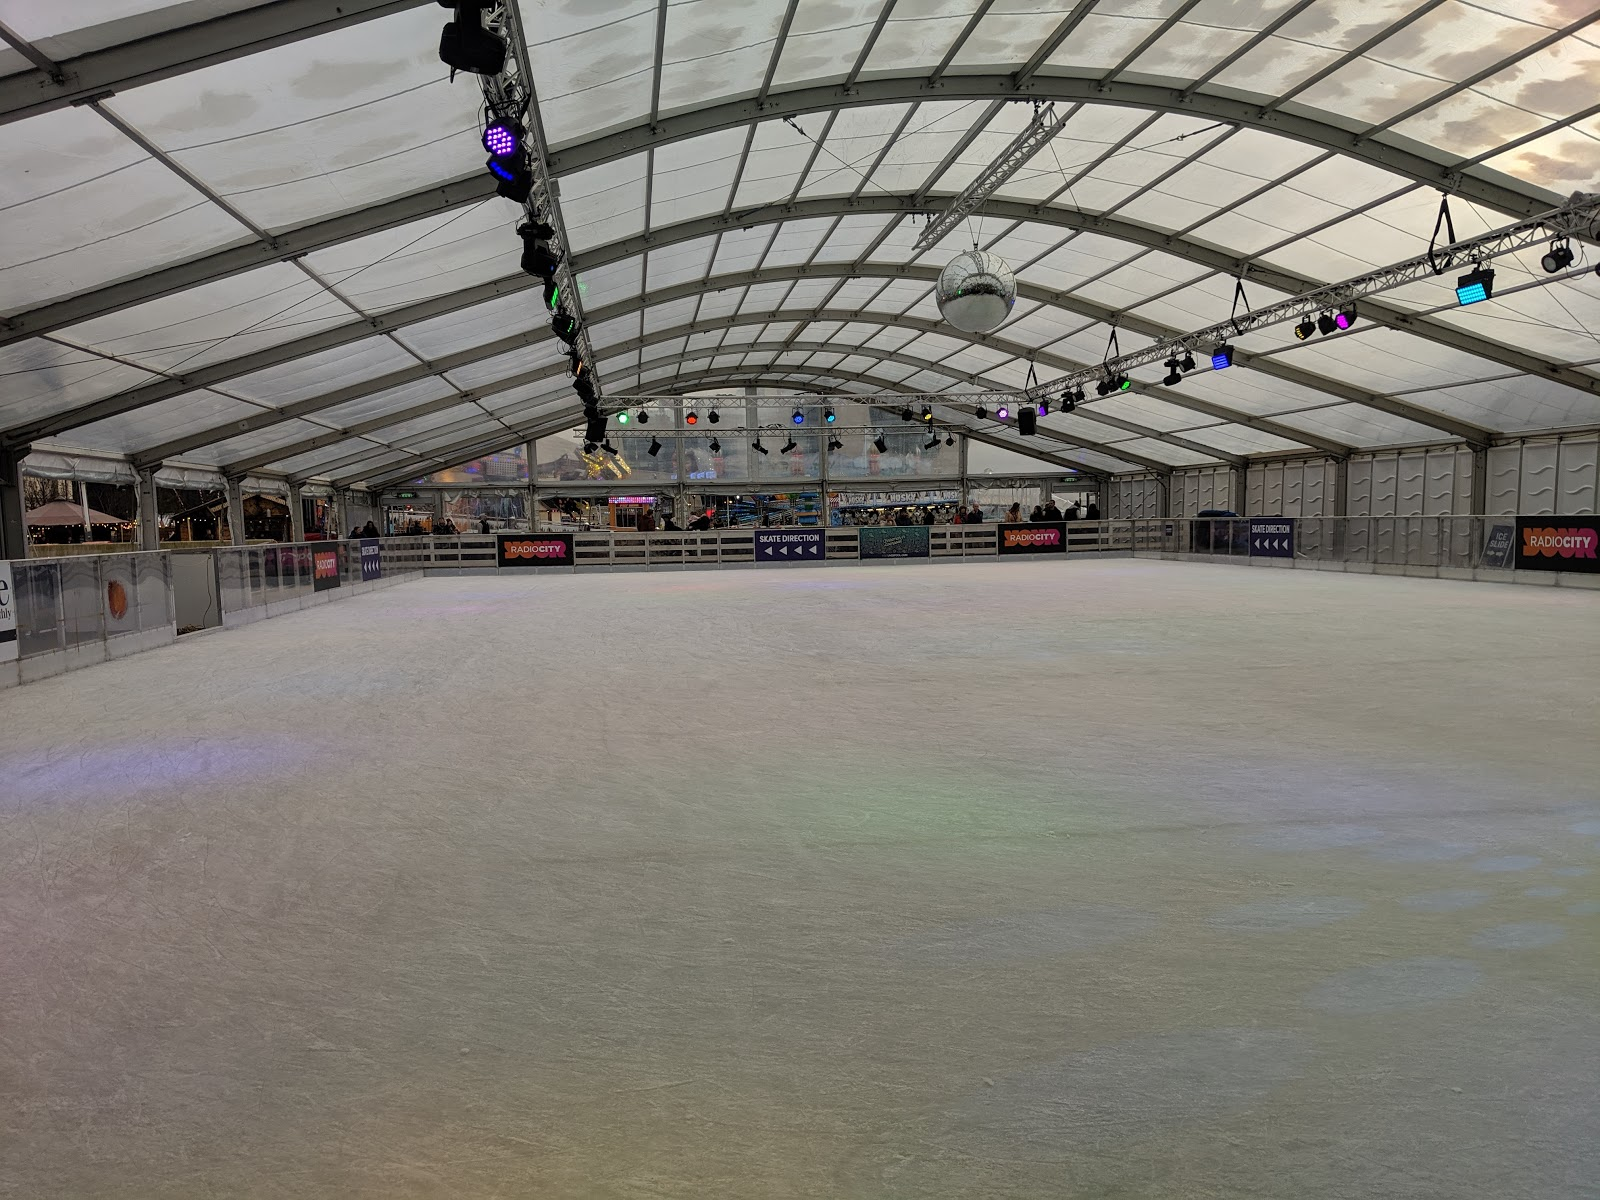 A Guide to Visiting Liverpool Christmas Markets & Lights  - Liverpool Ice Festival Ice Rink